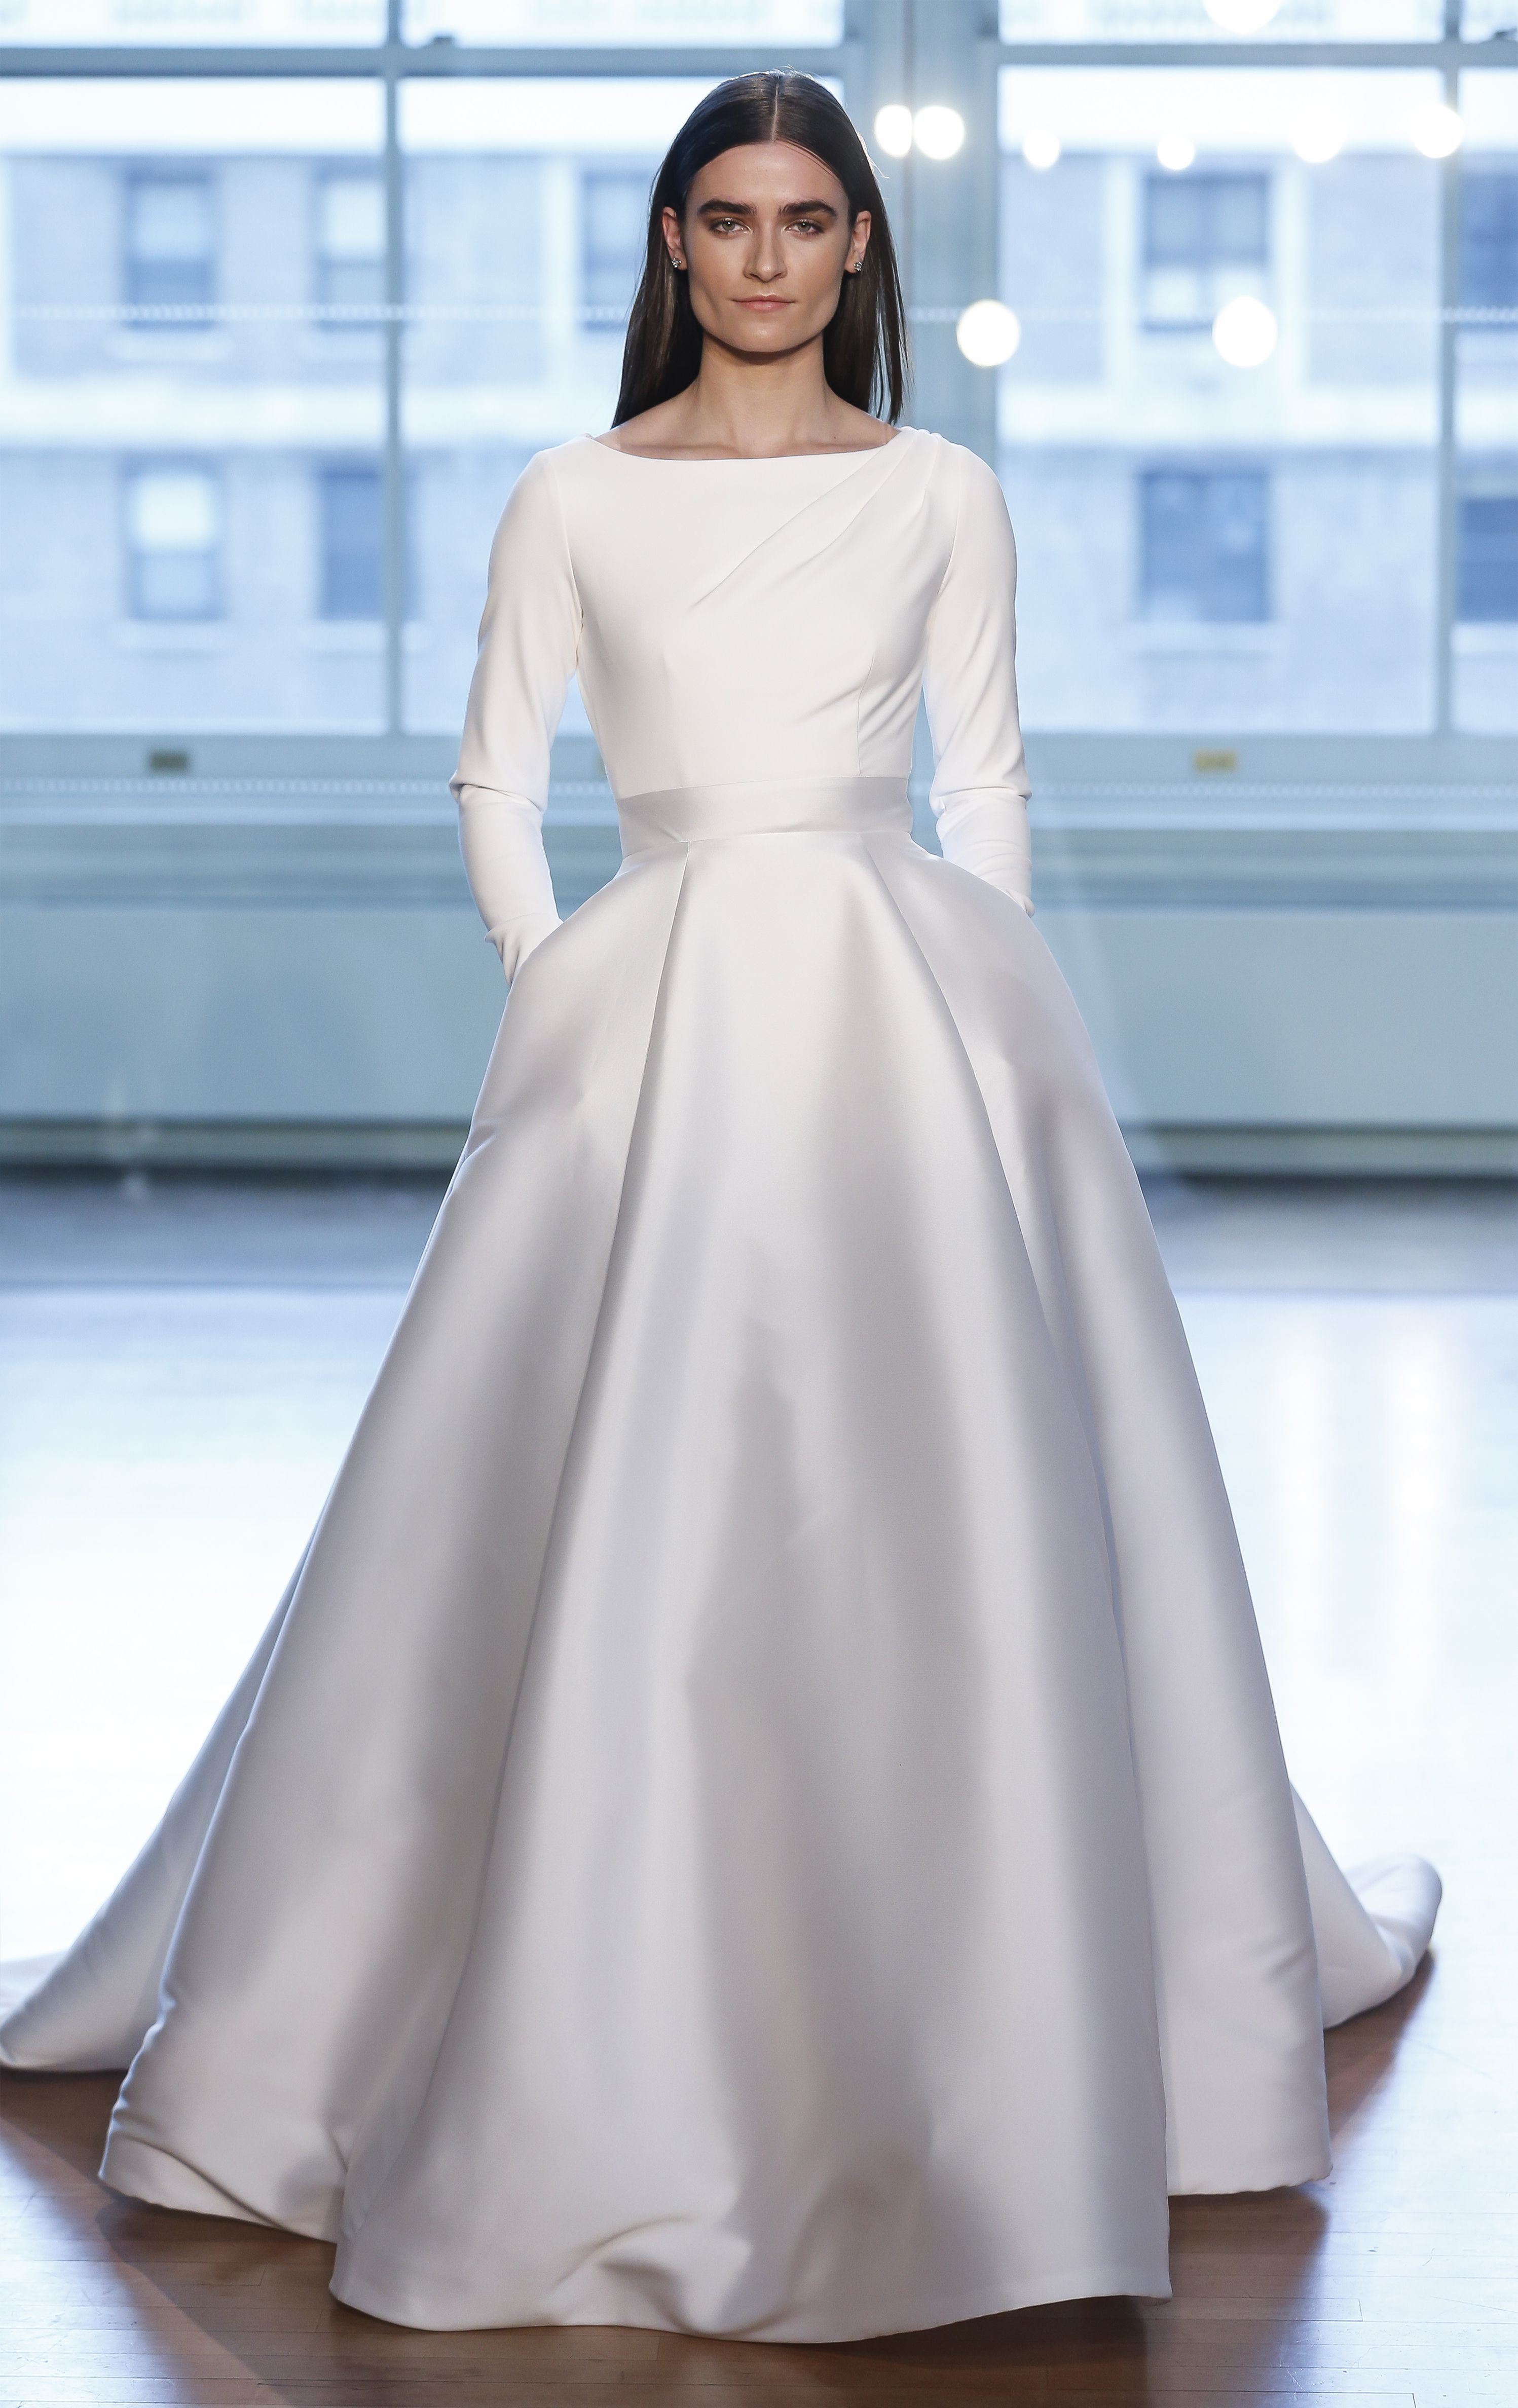 Meghan Markle Wedding Dress Back.6 Fresh Wedding Gown Trends With Sleek Silhouettes Simple Touches